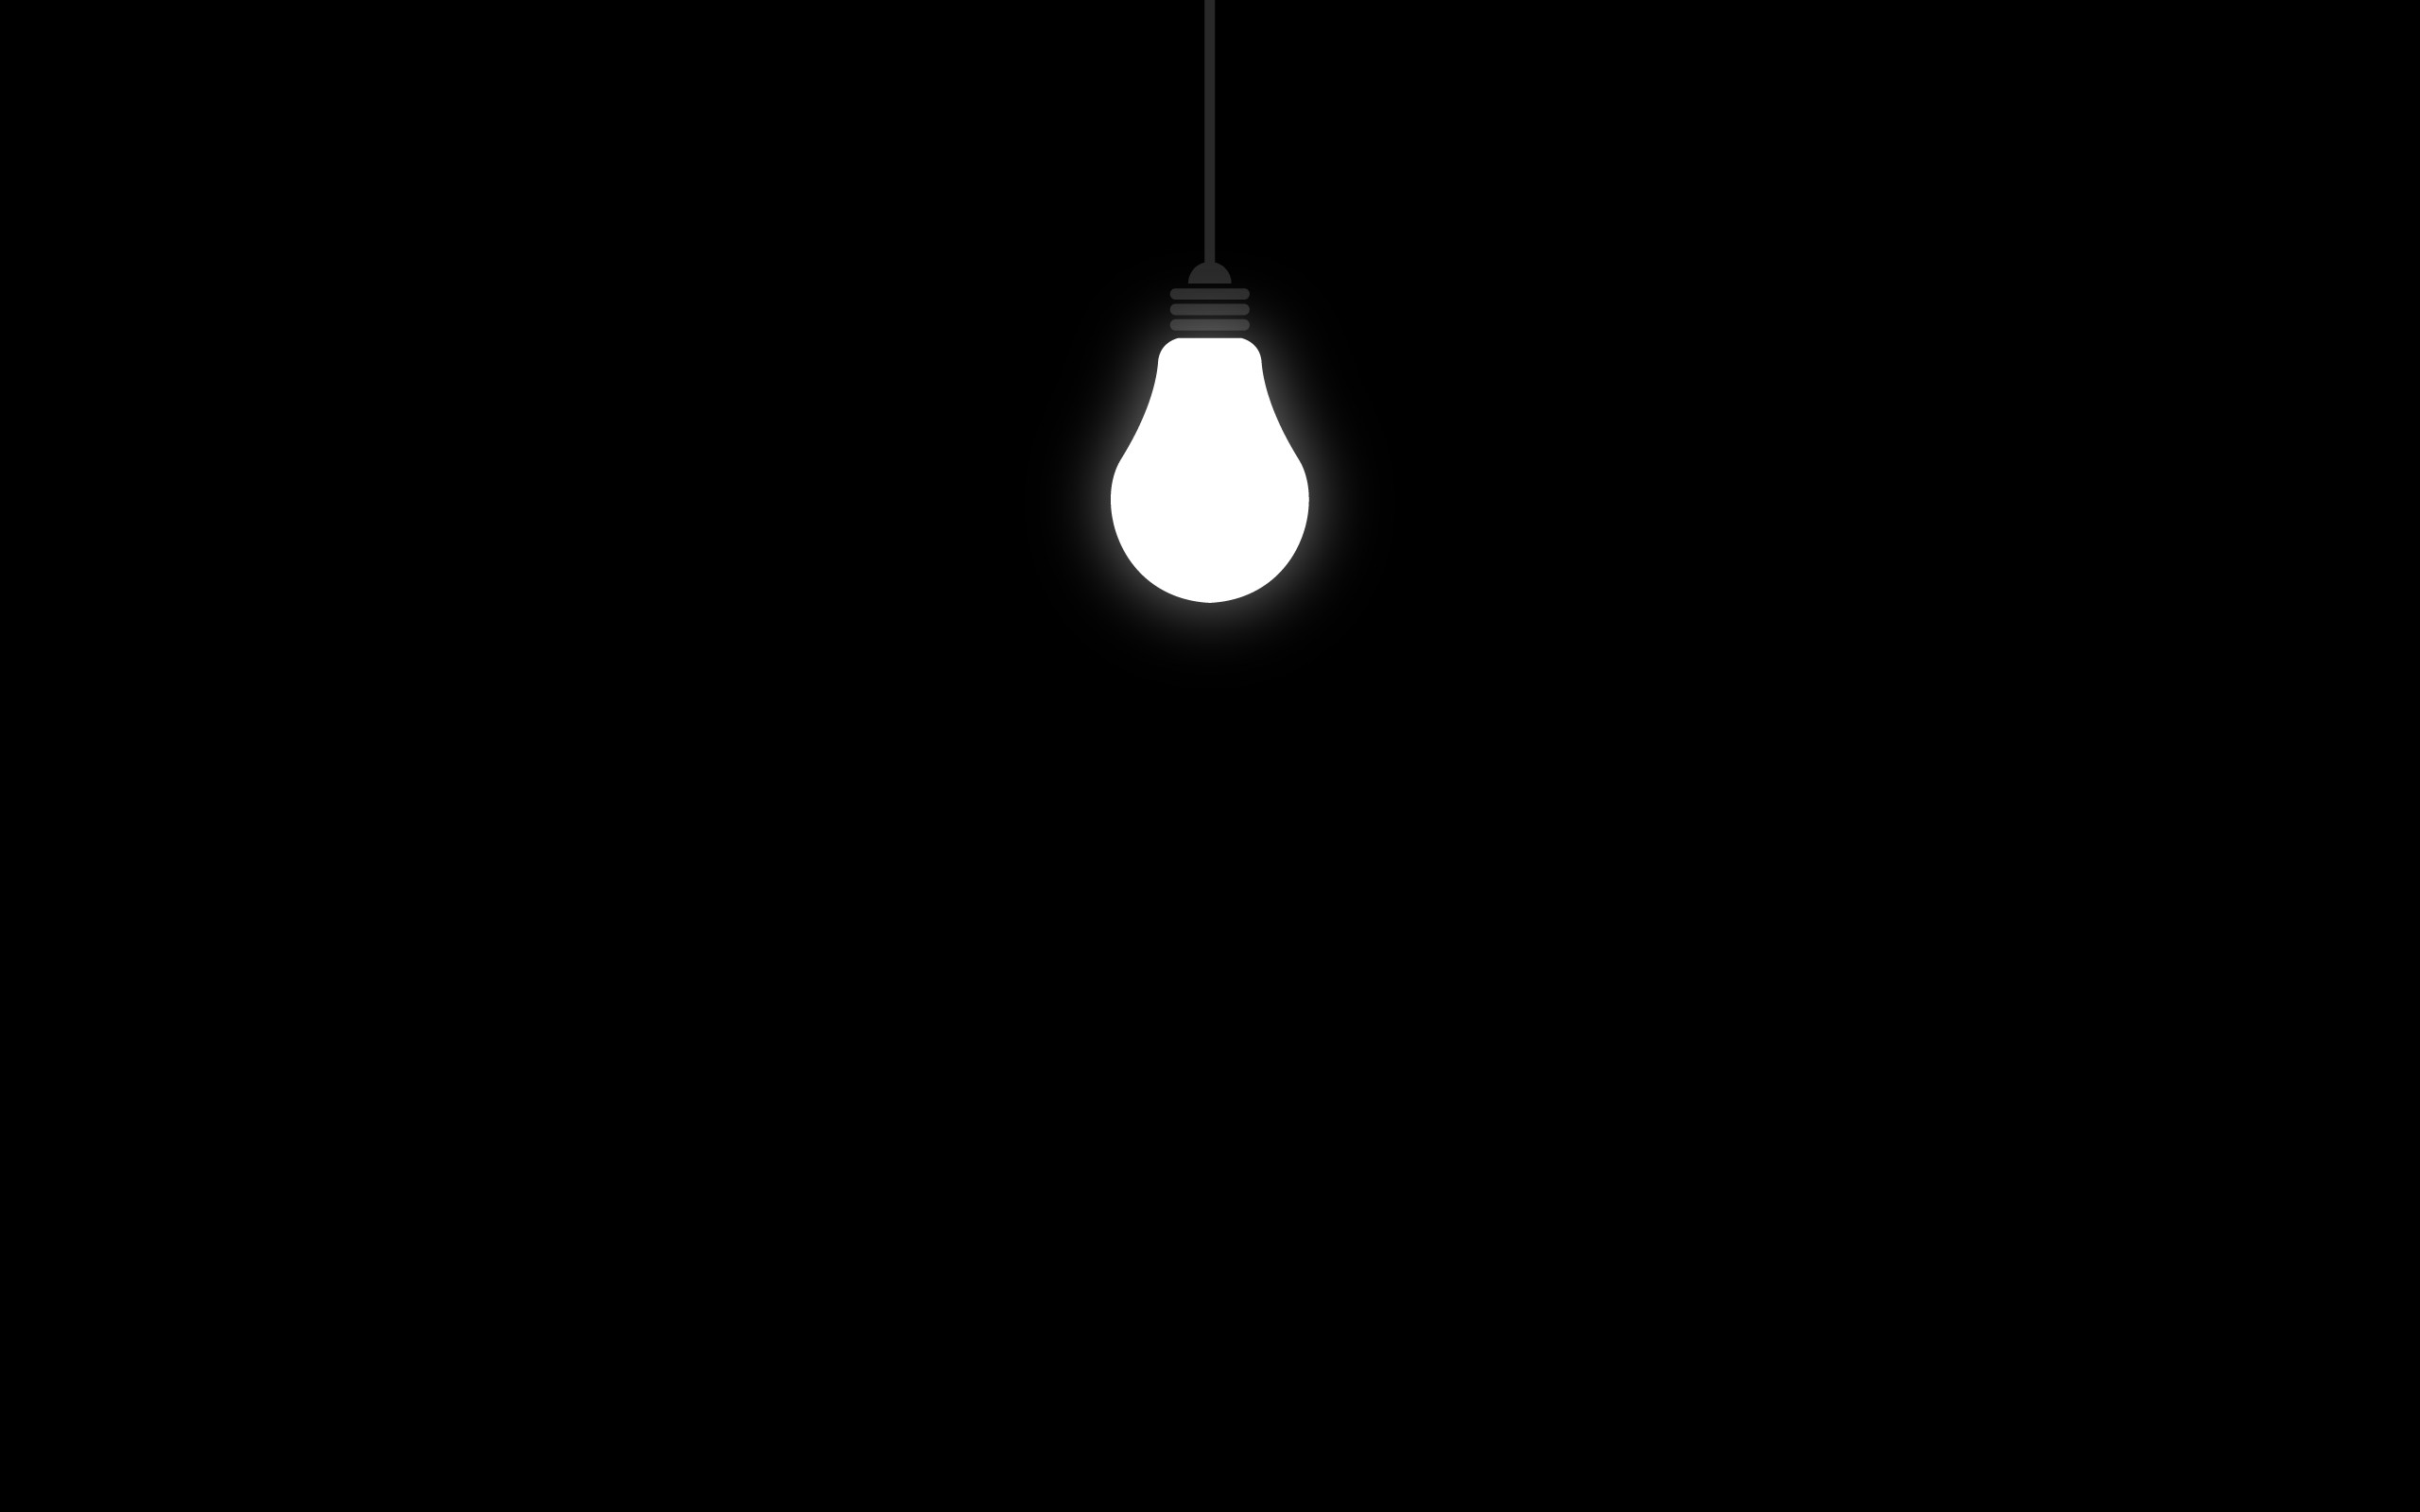 2560x1600 Lonely Light bulb